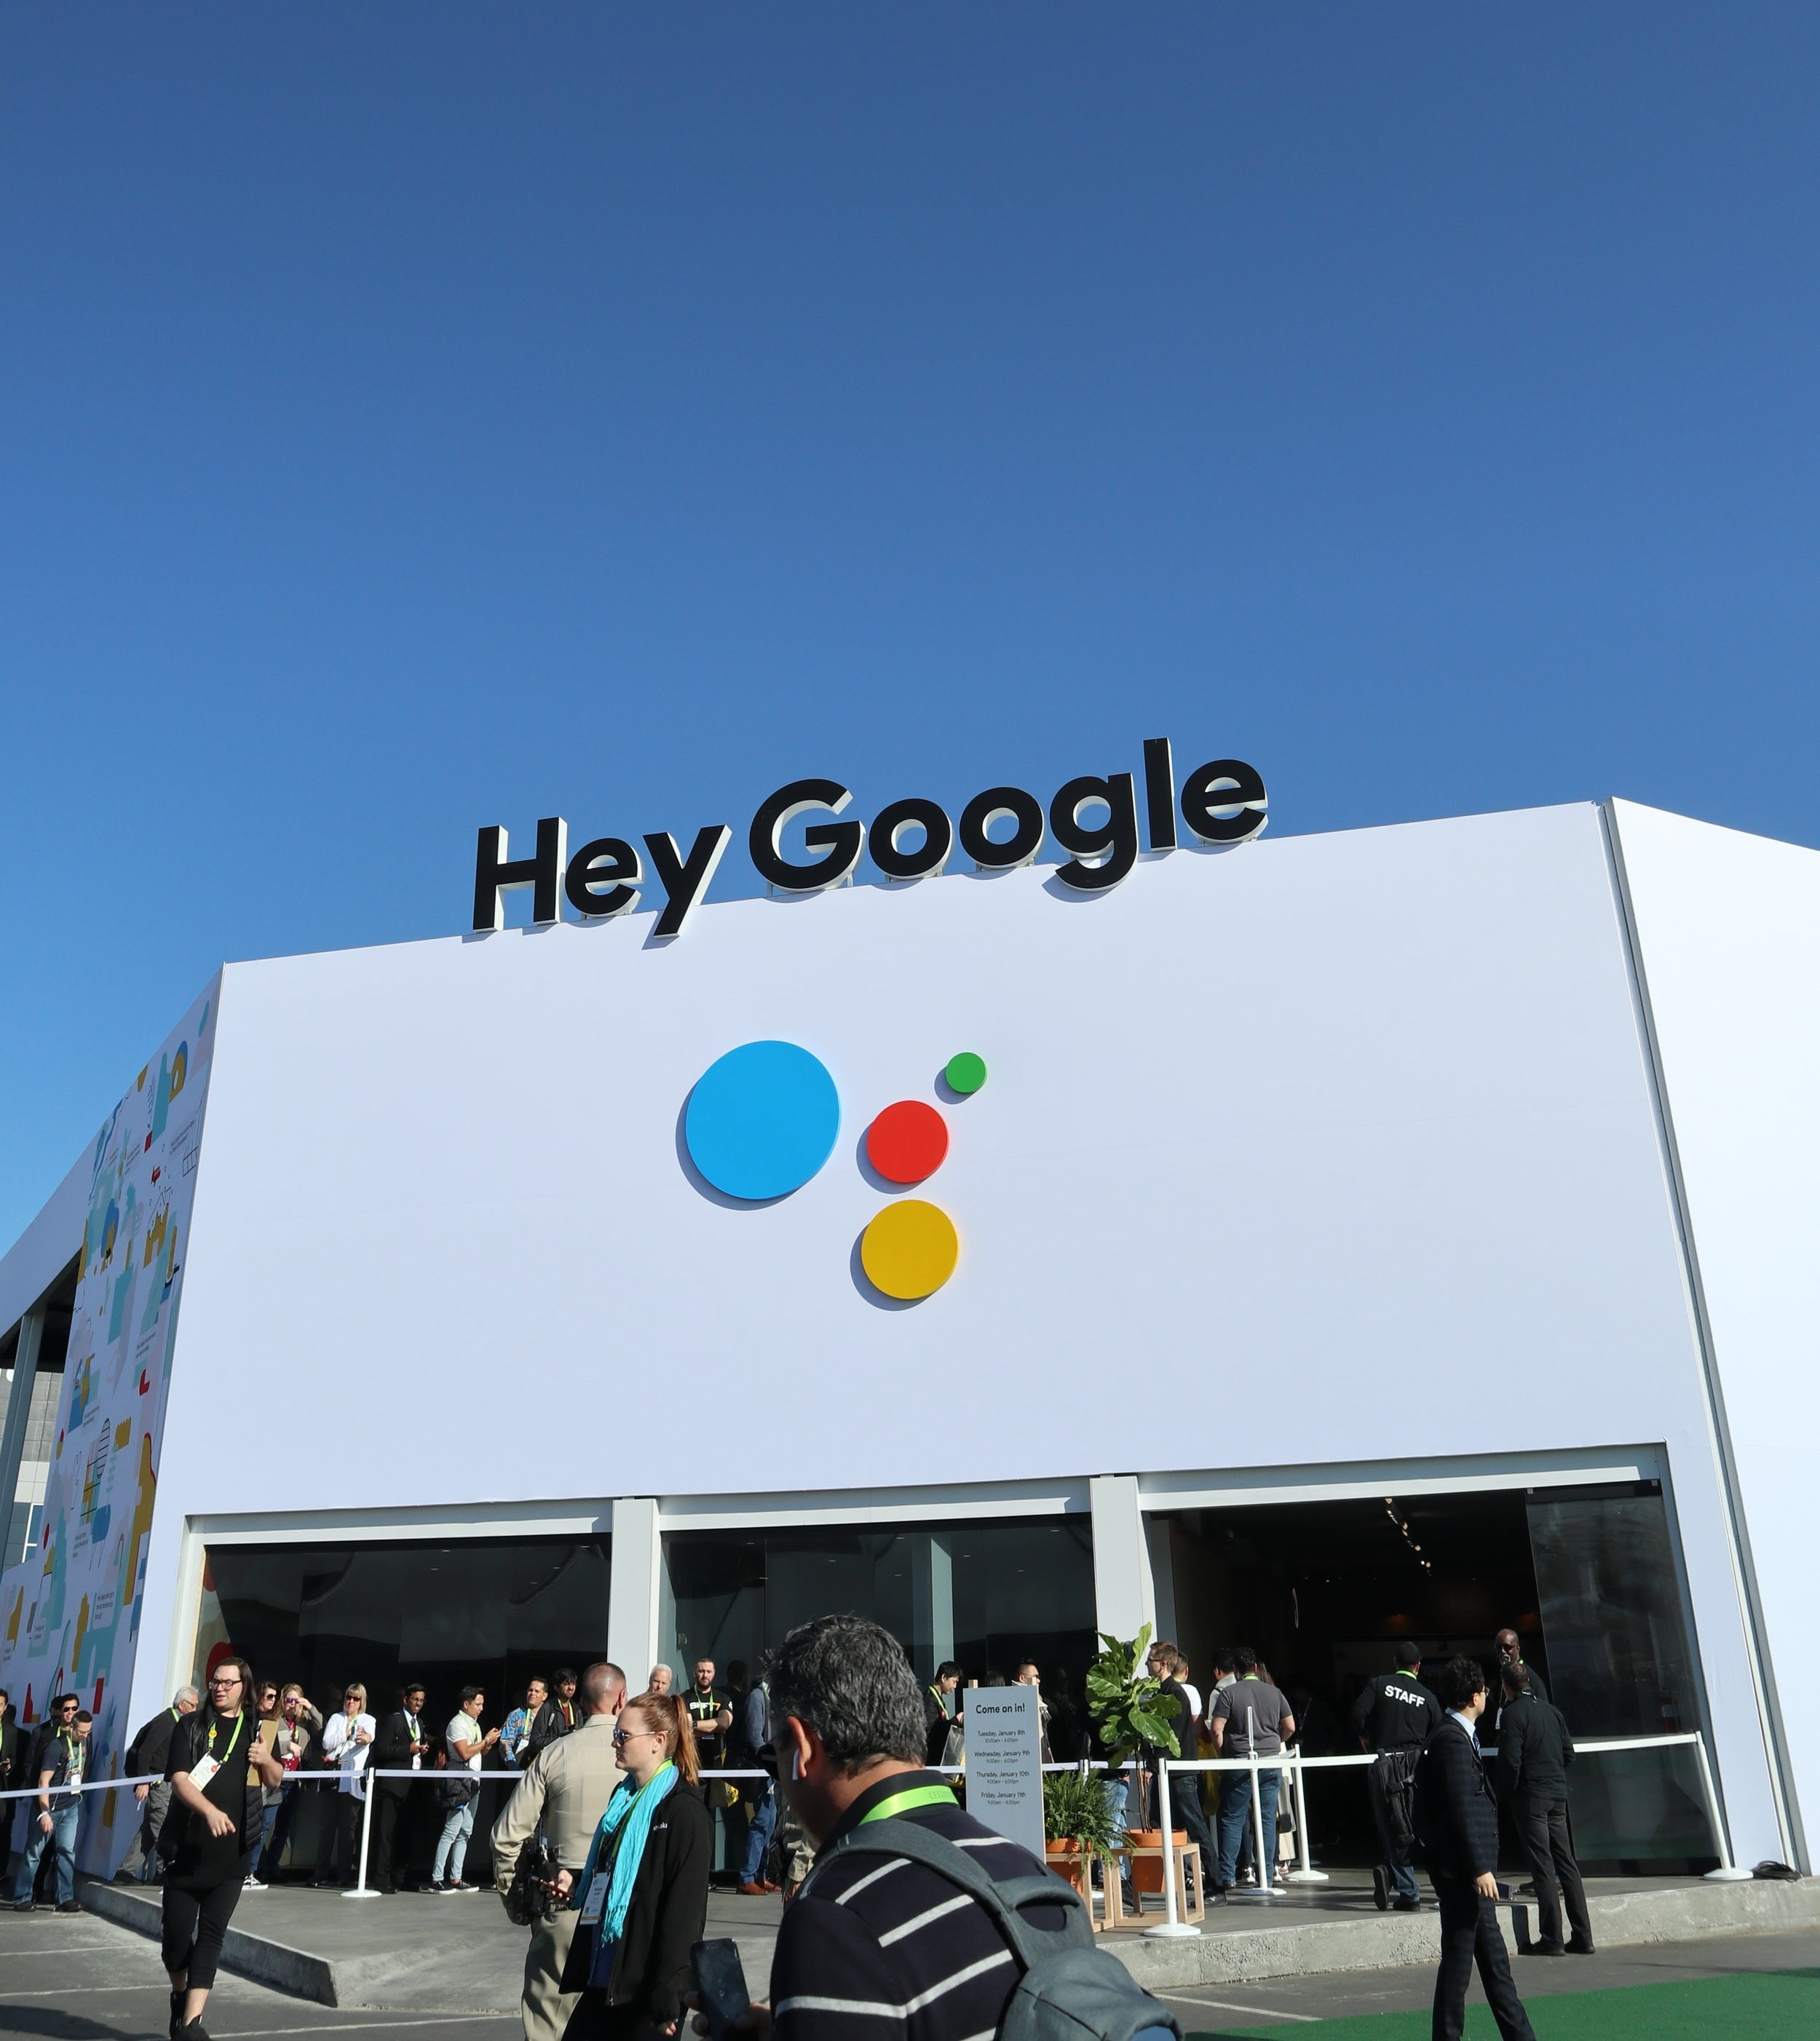 Google spent a fortune educating CES attendees with an entire building and roller coaster ride devoted to displaying Google Assistant functionality - Was it necessary?